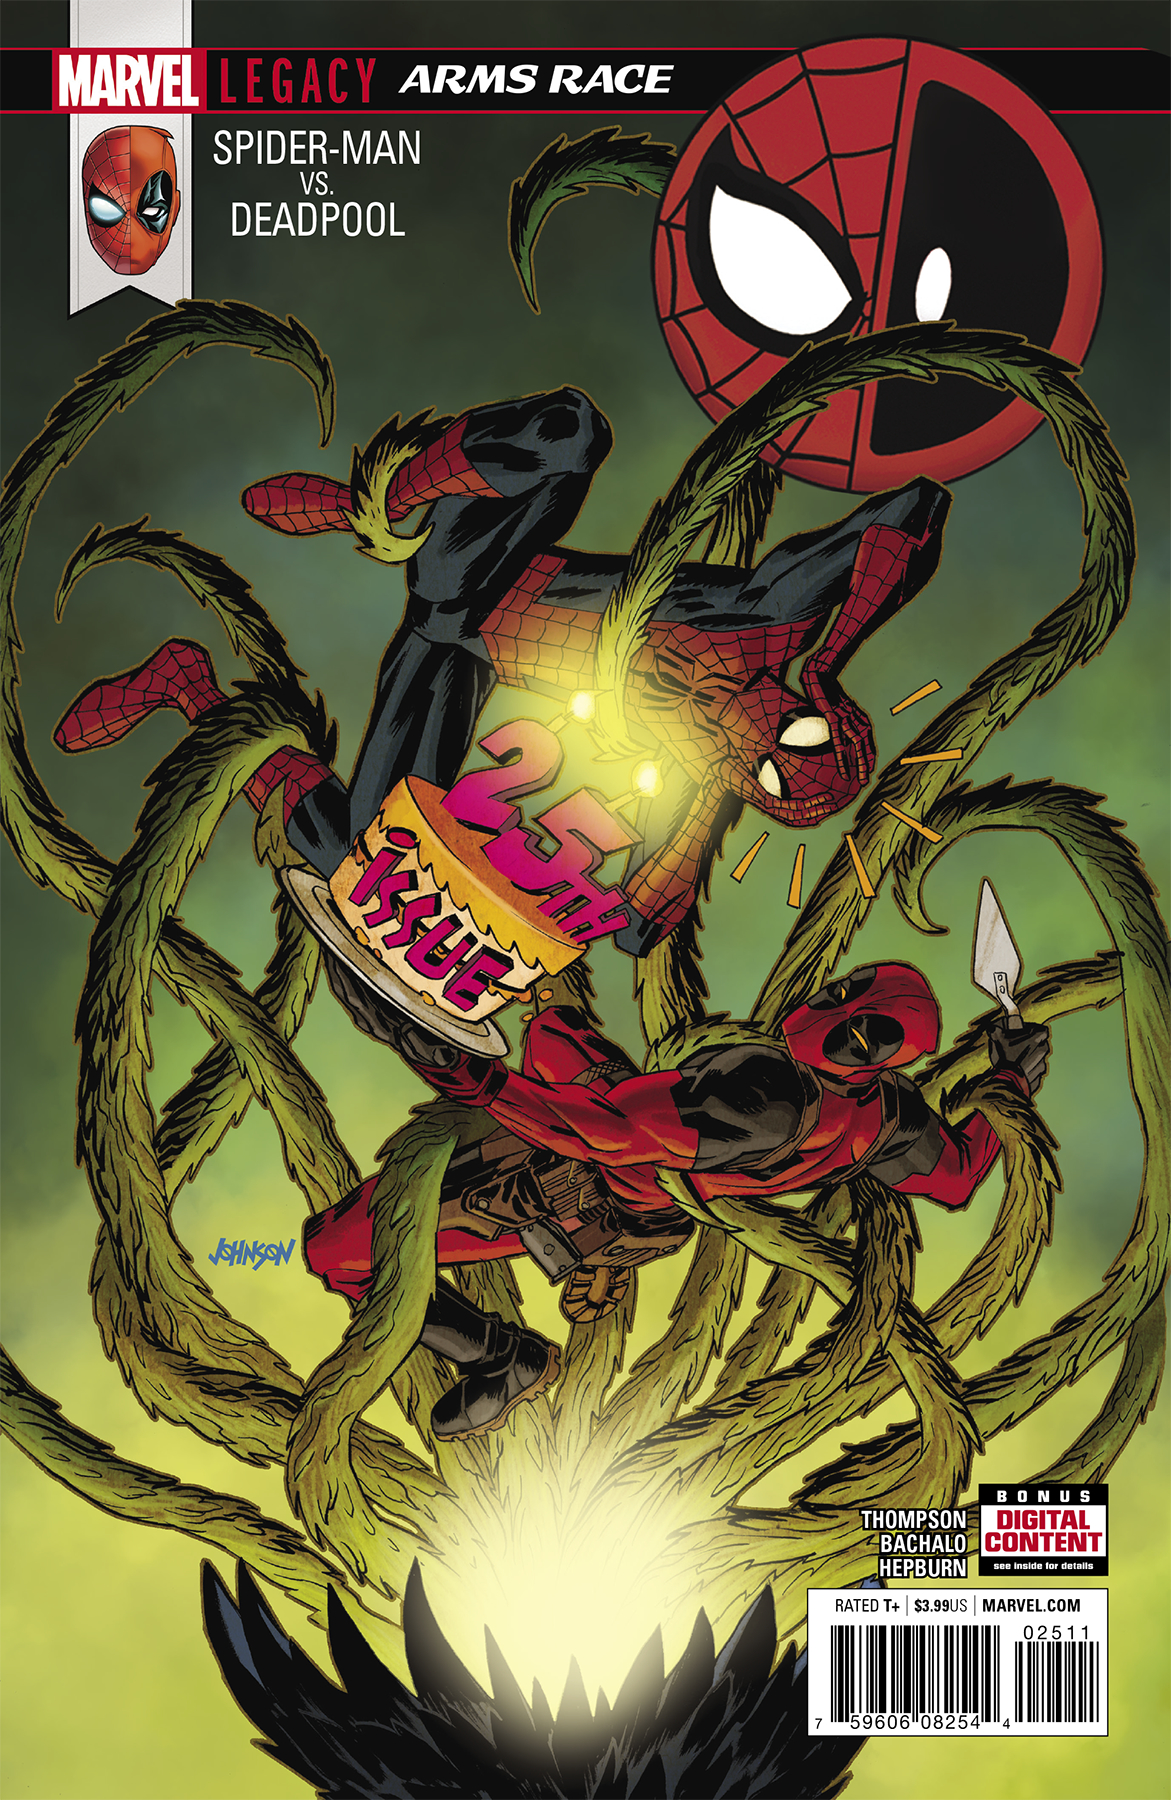 SPIDER-MAN DEADPOOL #25 LEG